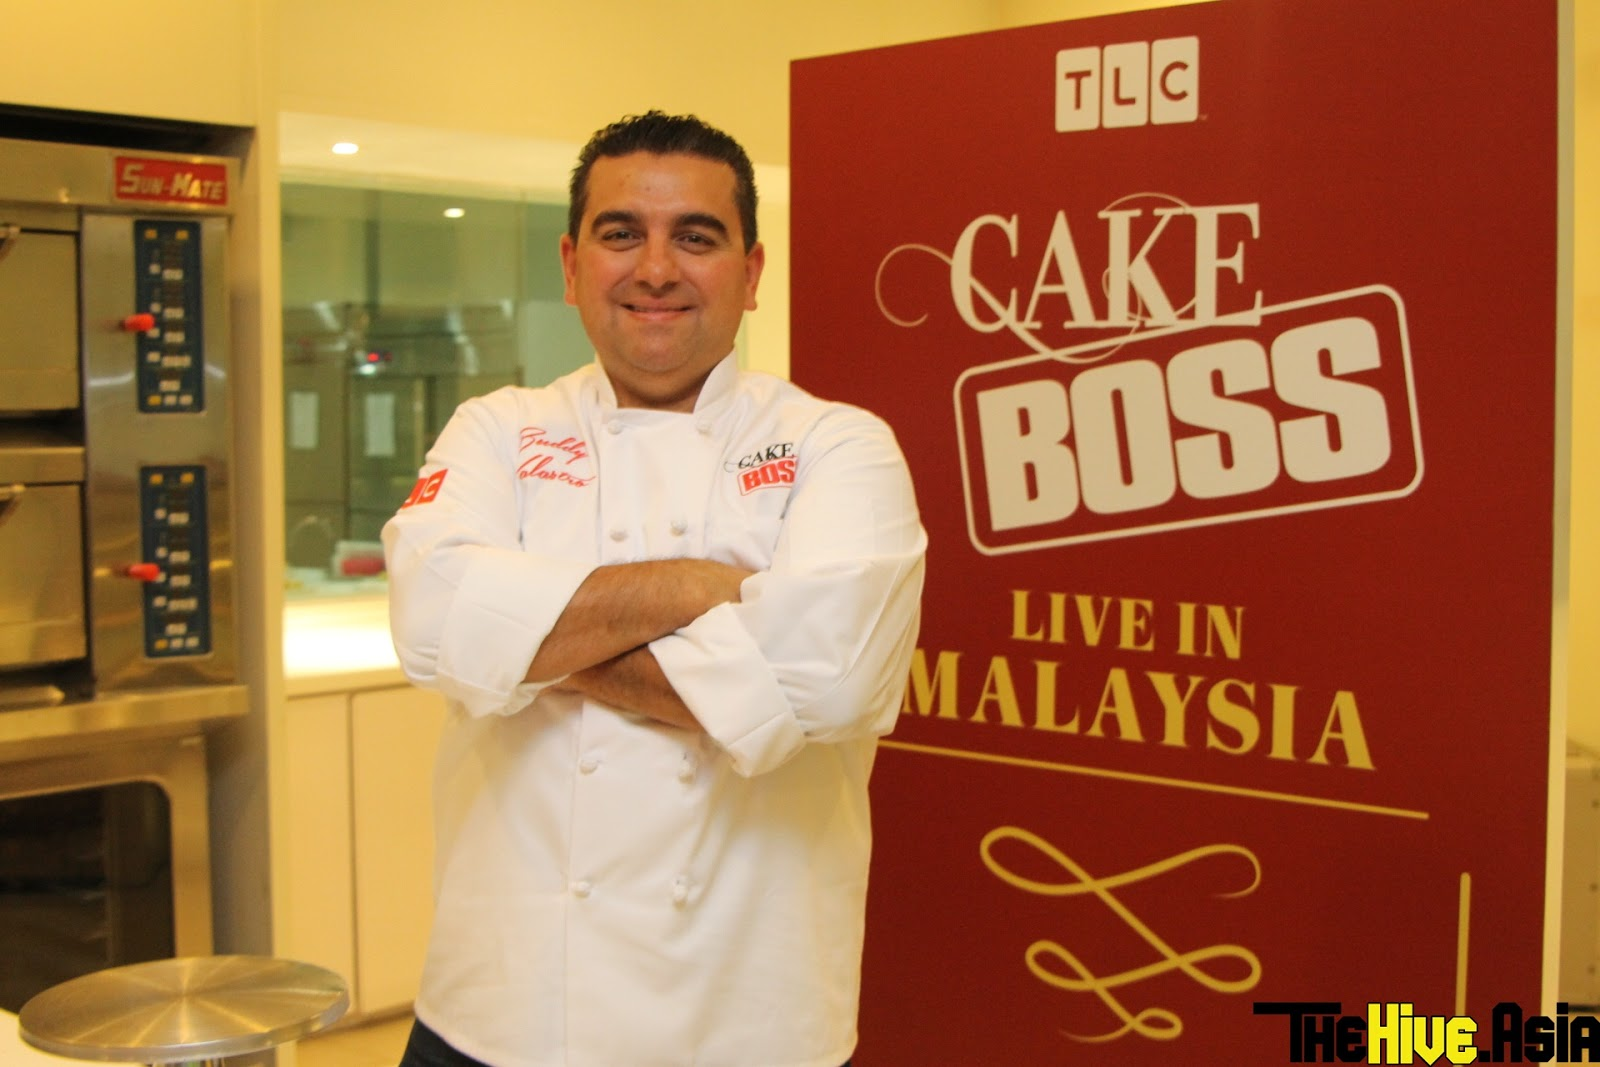 Everything you need to know about the Cake Boss!